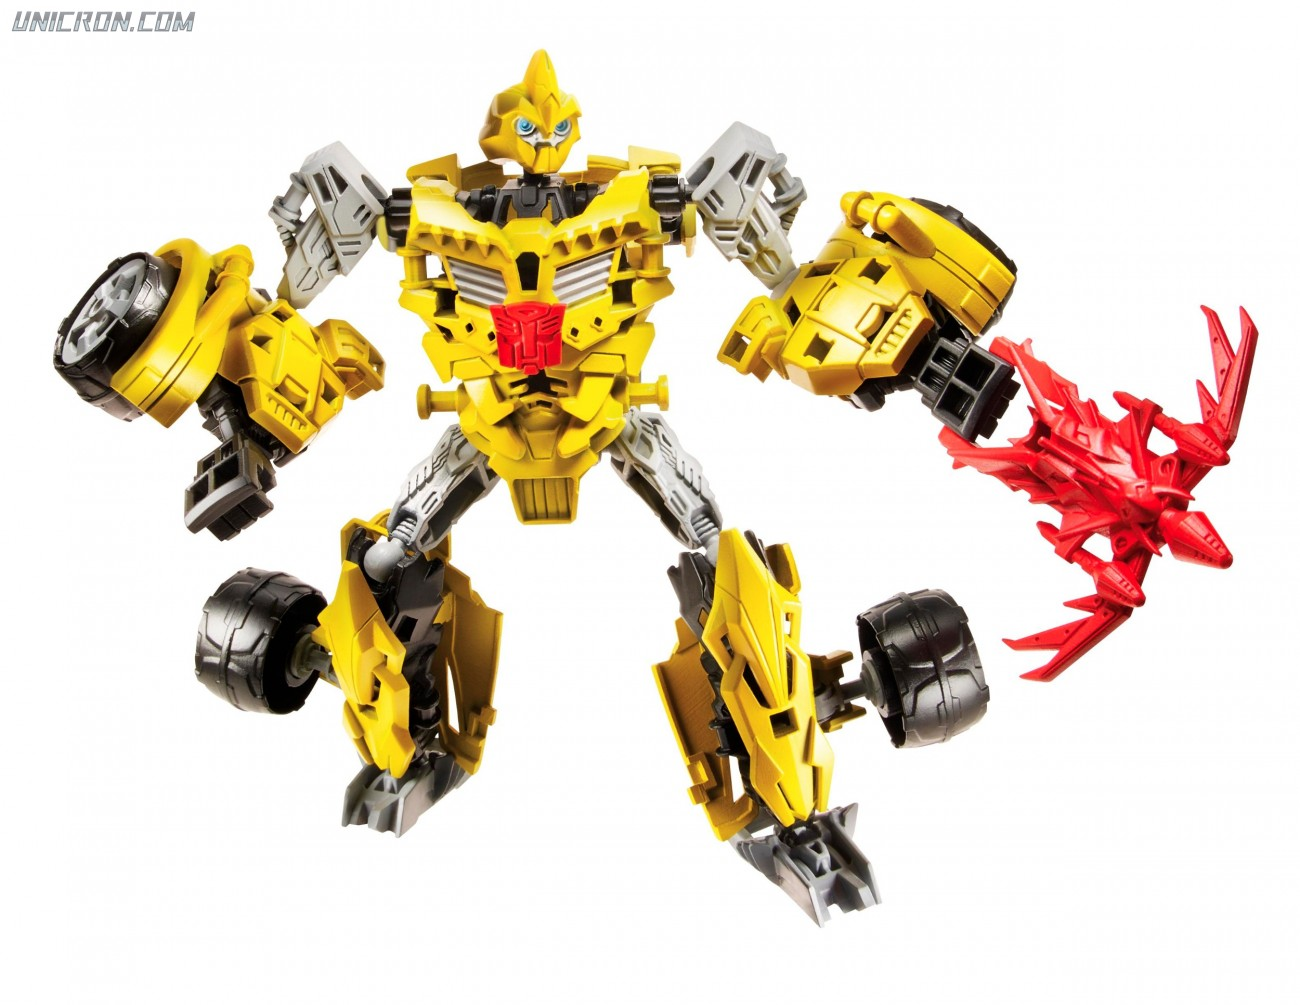 Transformers Construct-Bots Bumblebee (Beast Hunters, Construct-Bots)  toy